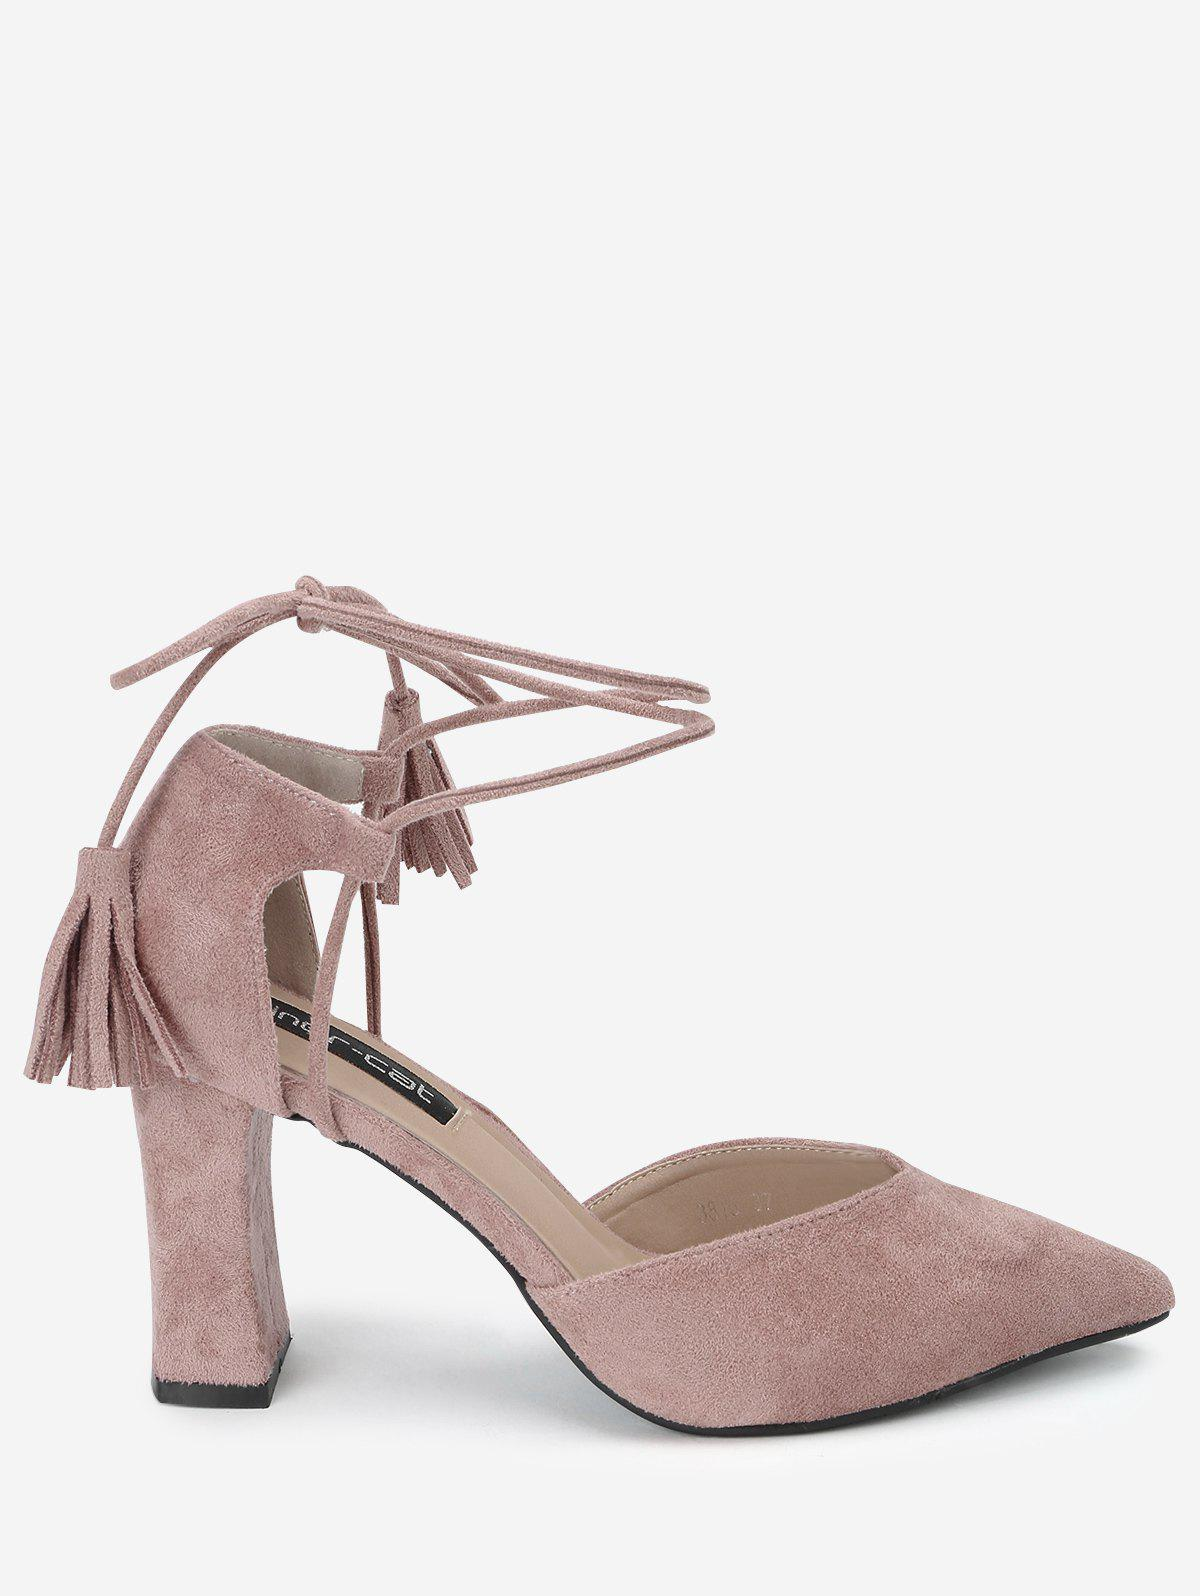 Tassel Block Heel Sandals - PINK 38